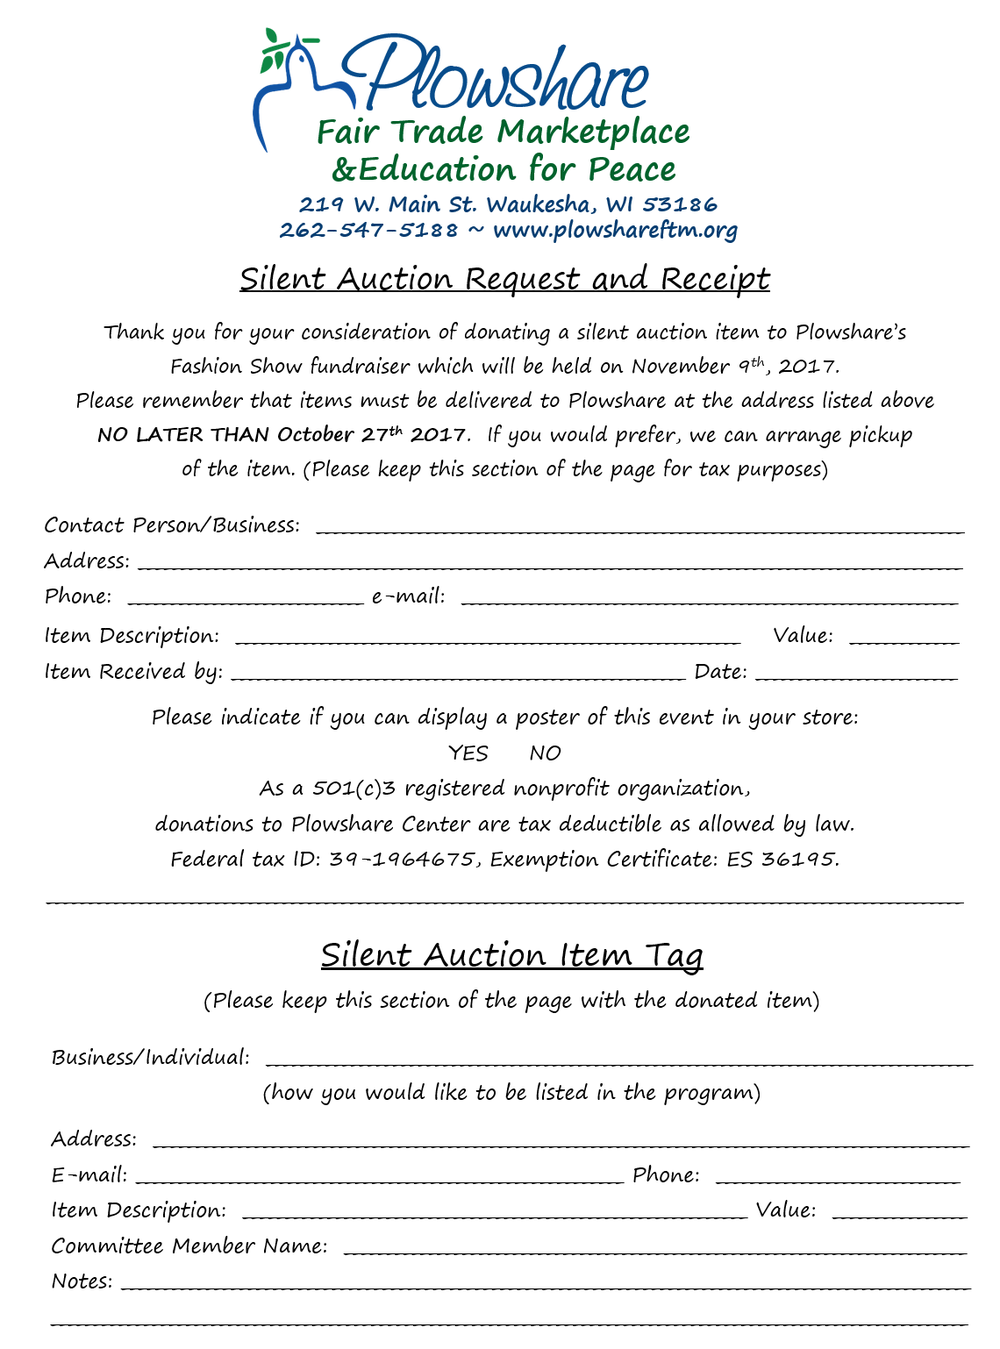 Silent Auction form.png